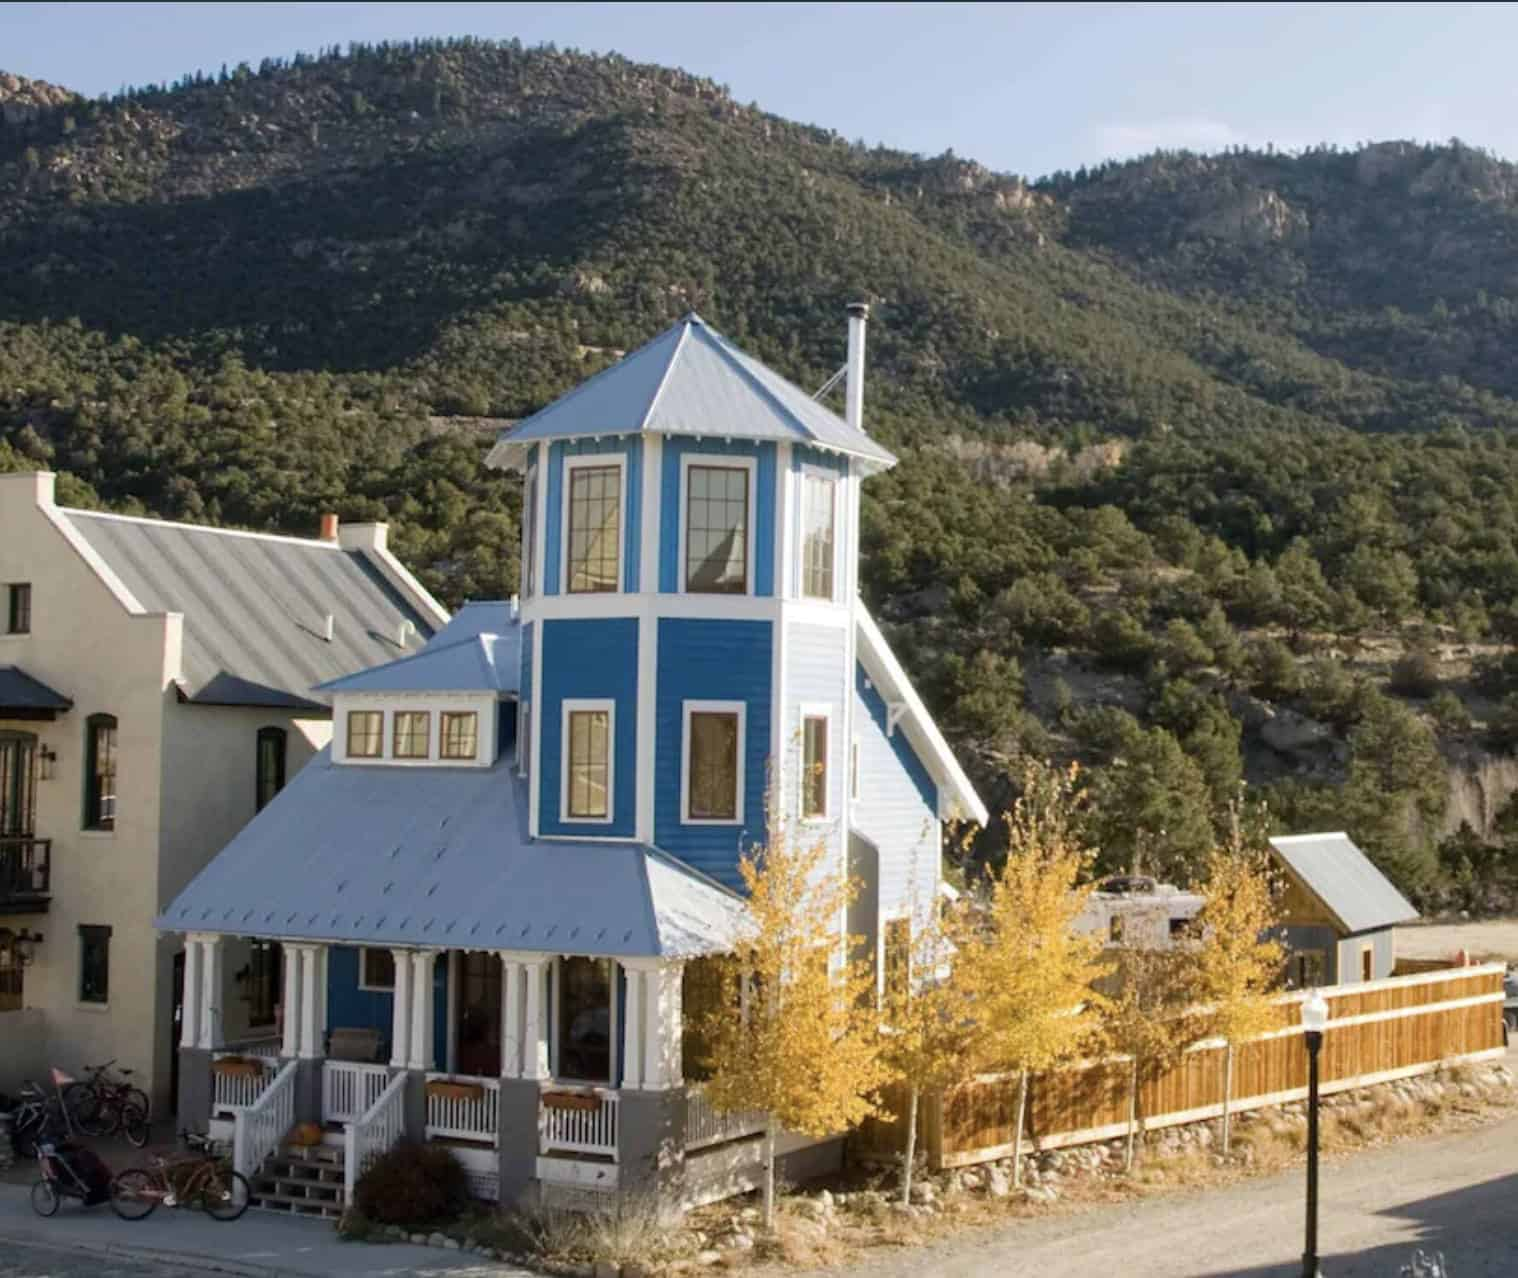 airbnb wedding venues colorado blue tower house set in the mountains